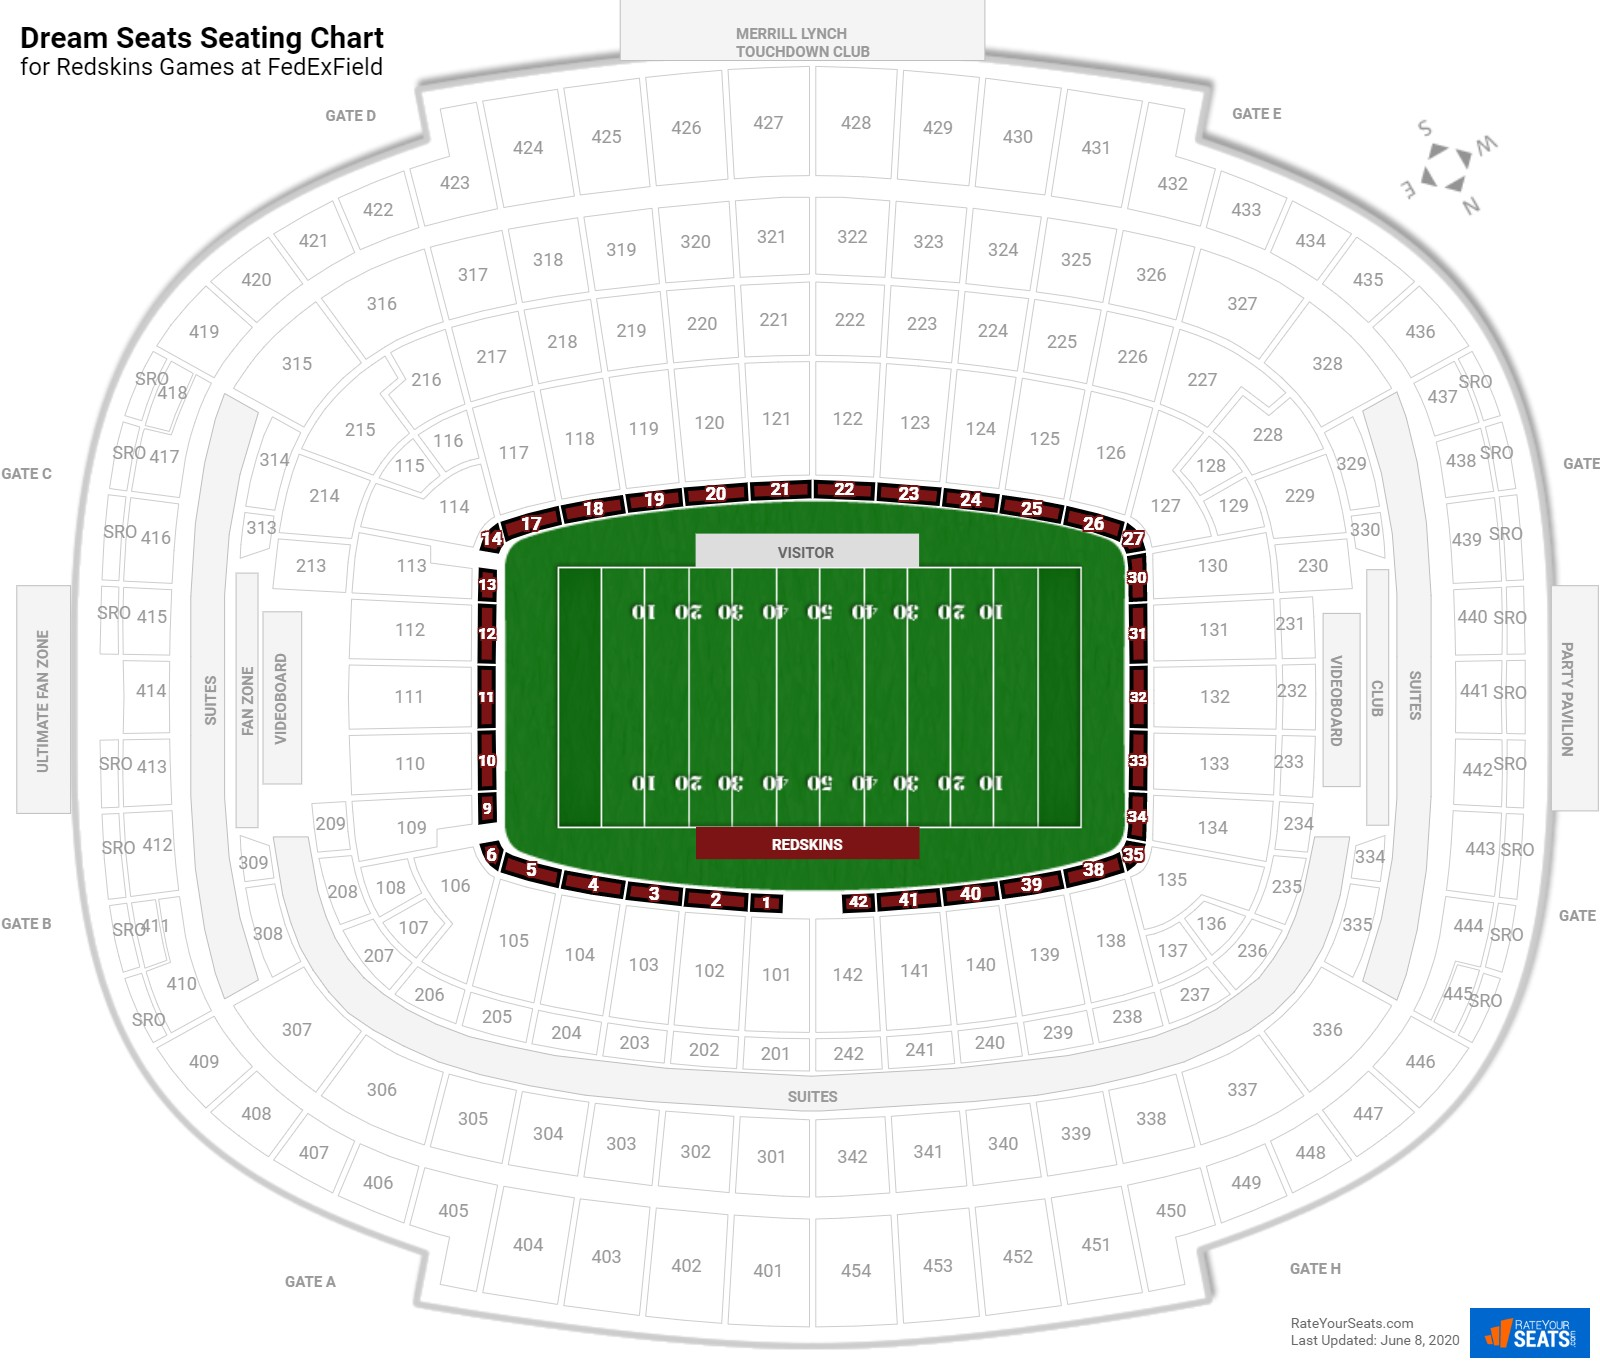 FedExField Dream Seats seating chart